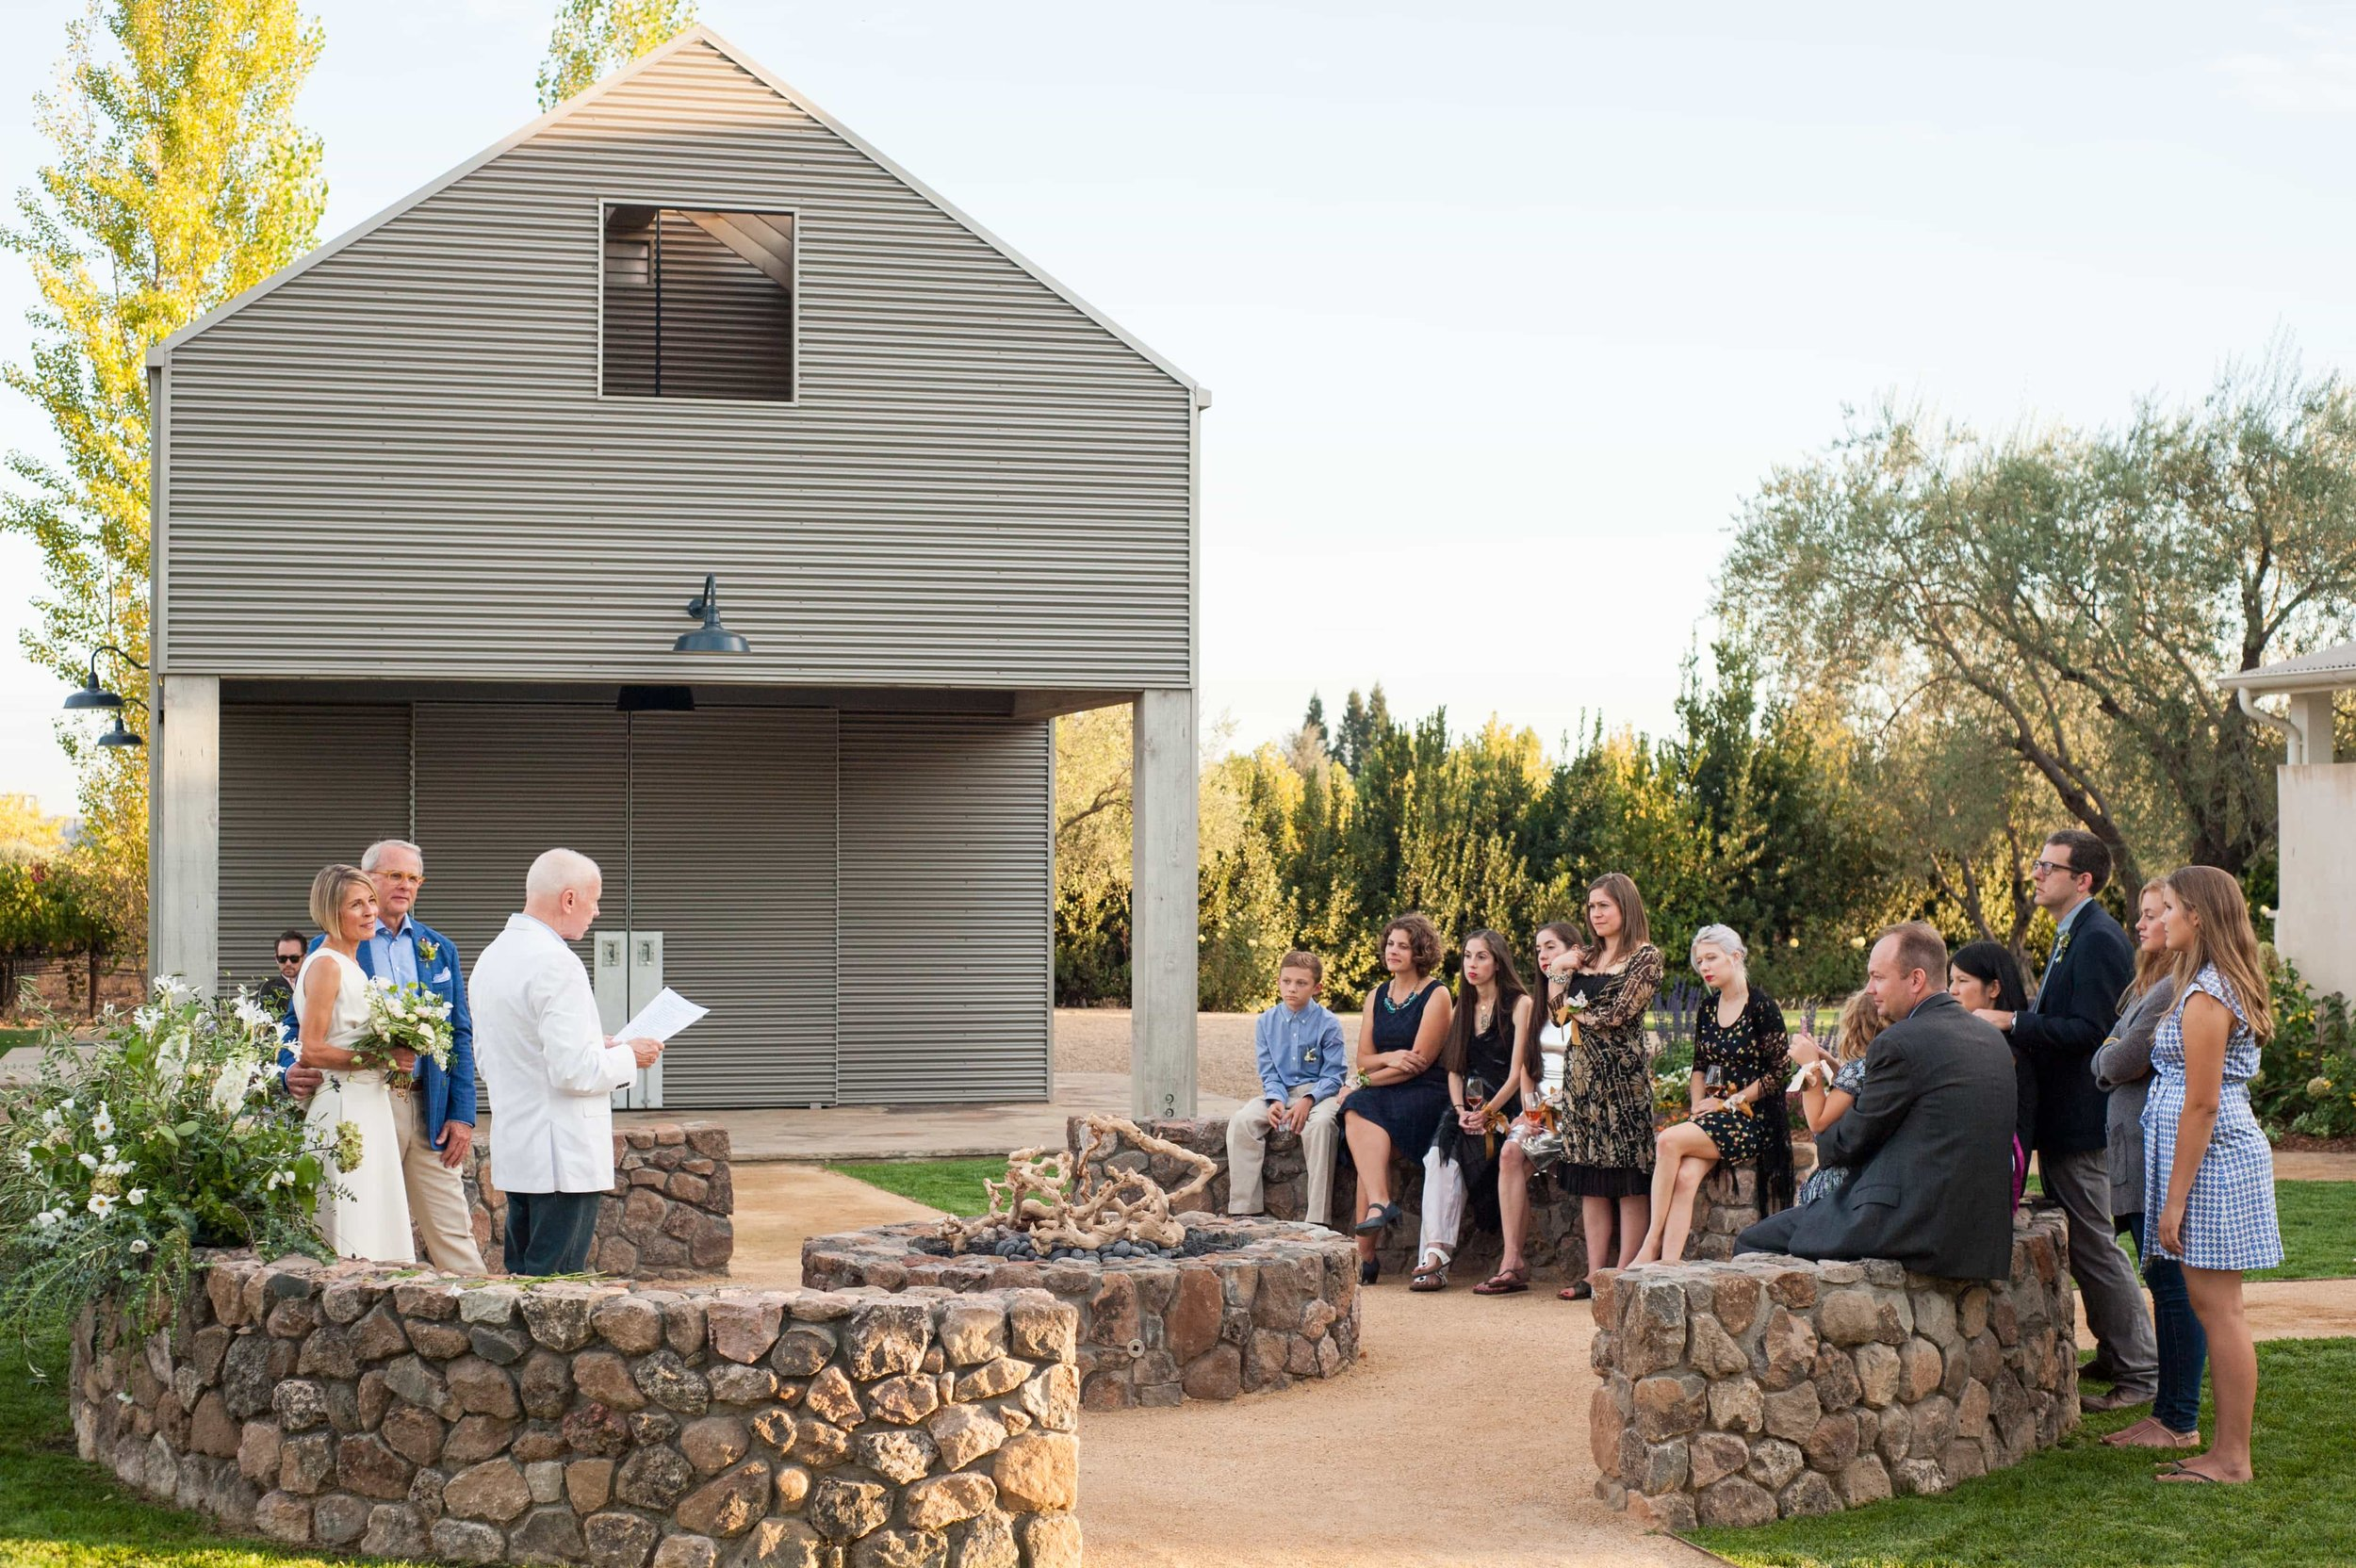 Small wedding ceremony in Oregon wine country